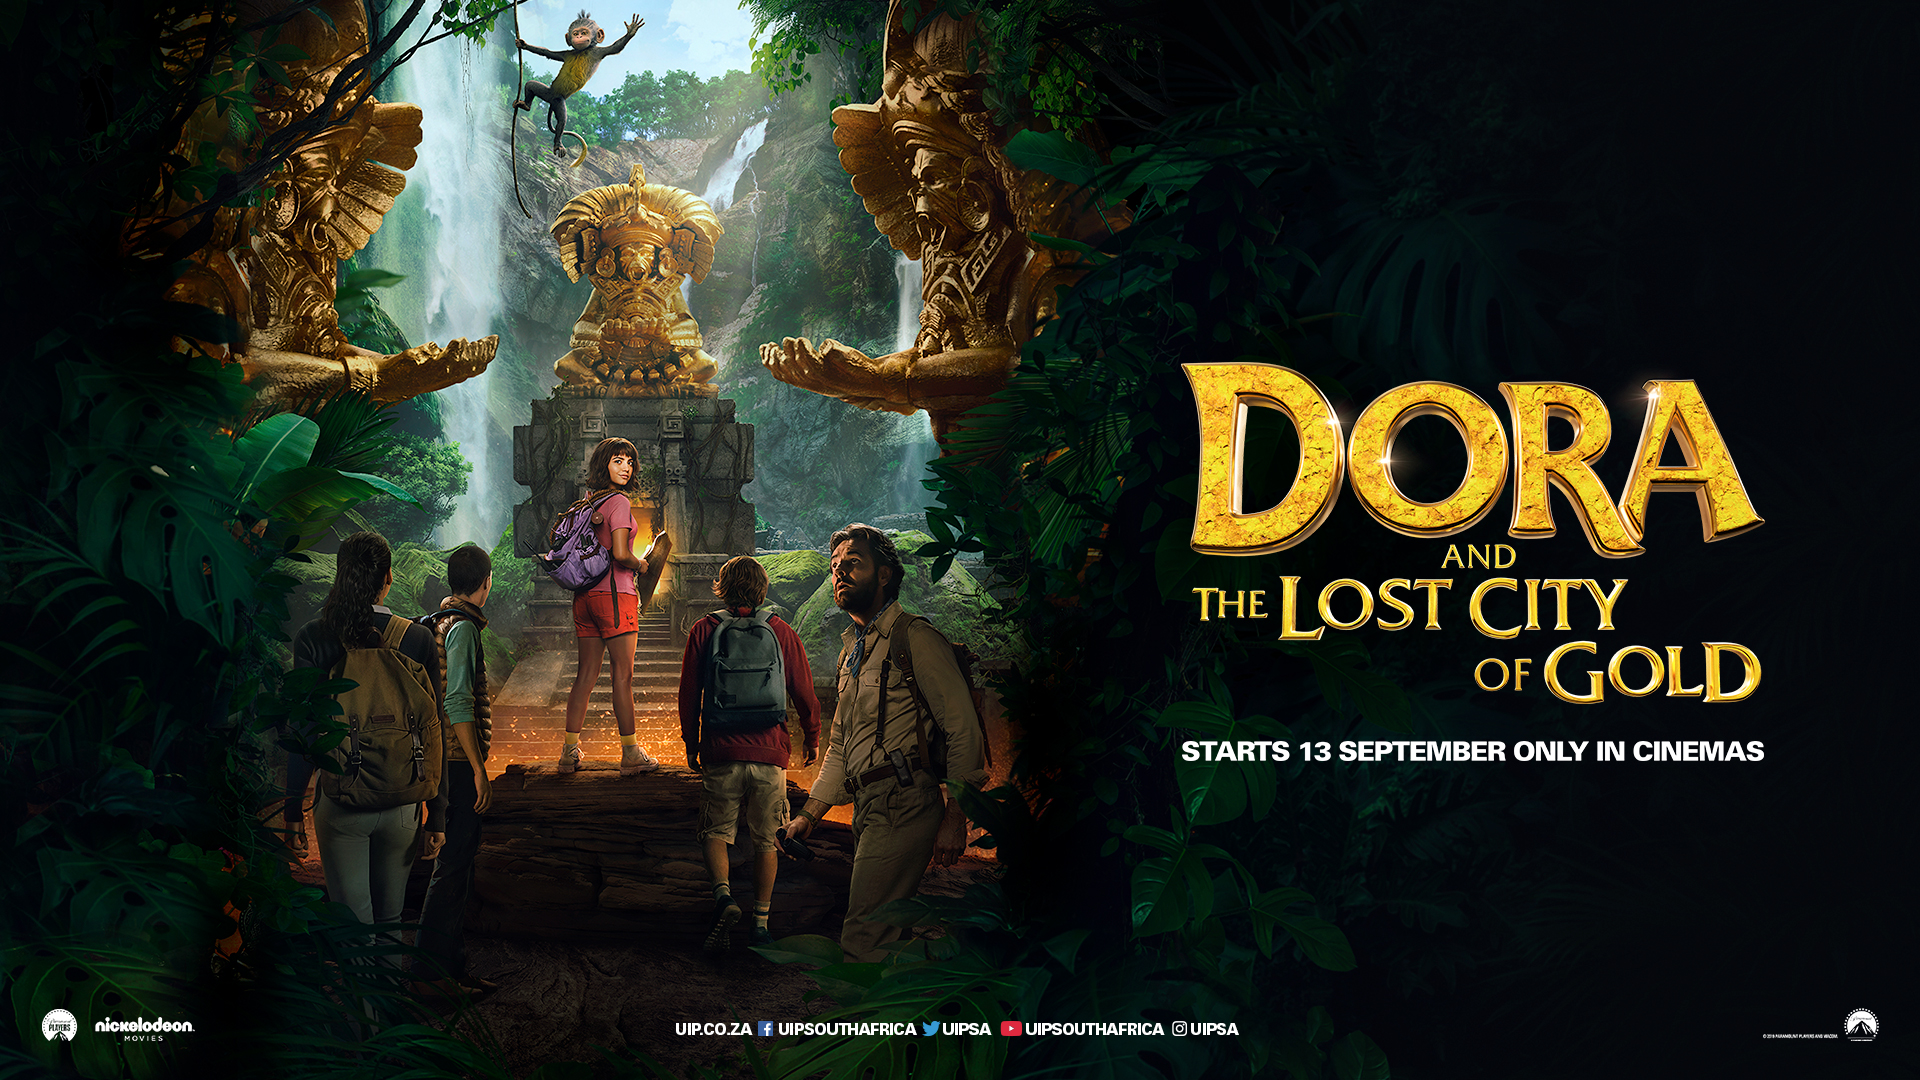 'Dora and the Lost City of Gold' - landscape artwork